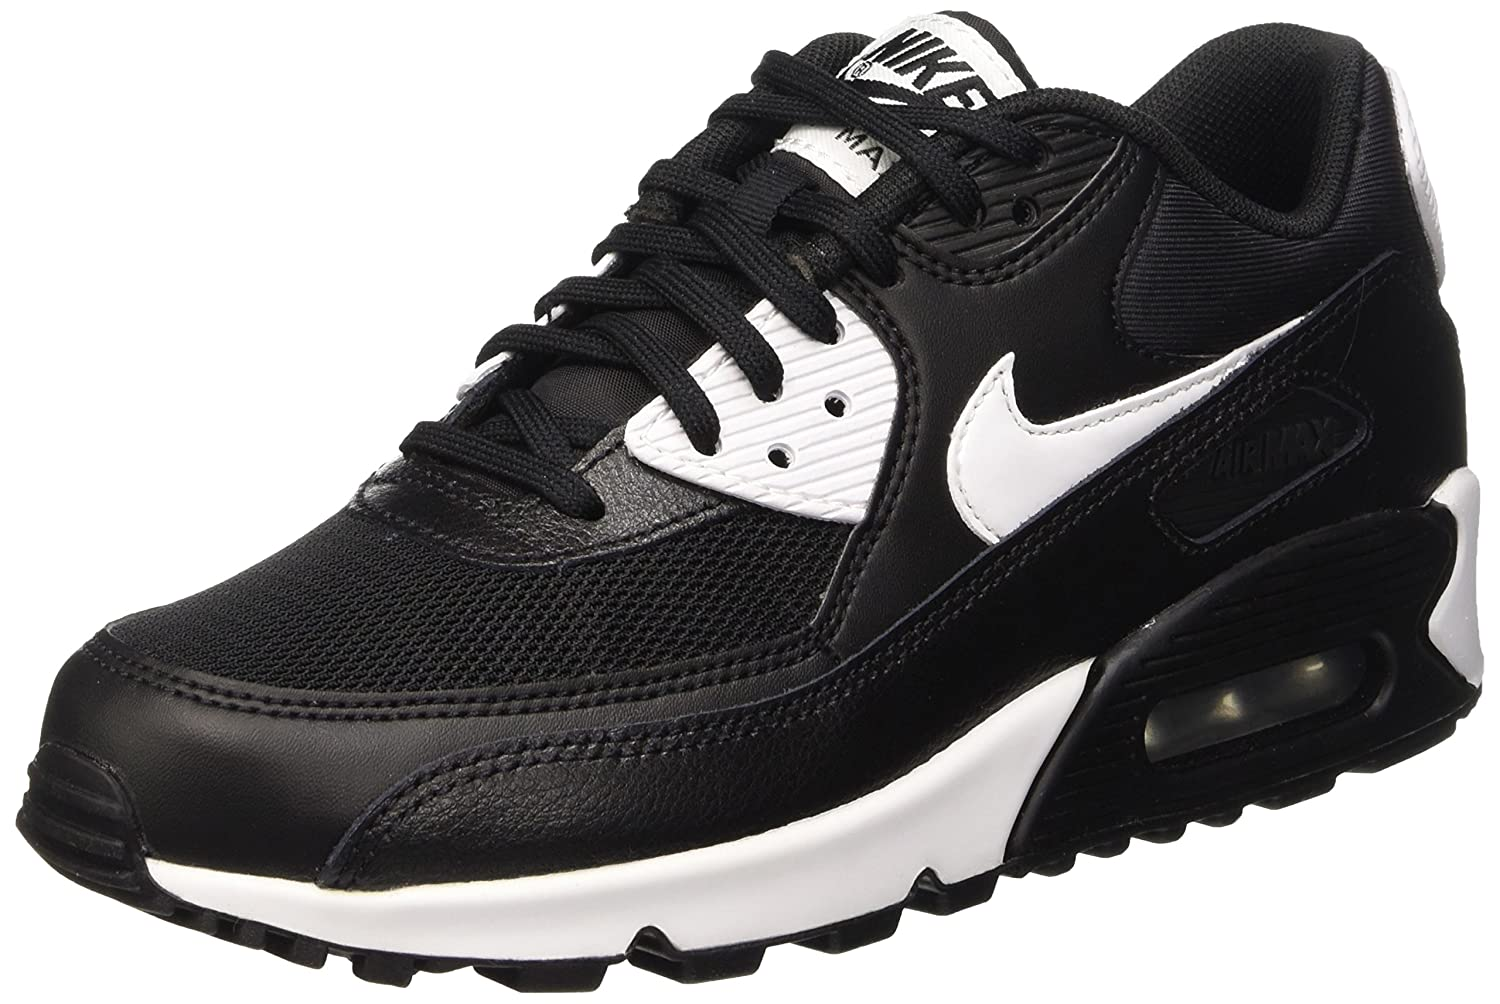 innovative design 6f30d 4cb04 Amazon.com   Nike Womens Air Max 90 Essential Black White Metallic Silver  Running Shoe, US 8   Running